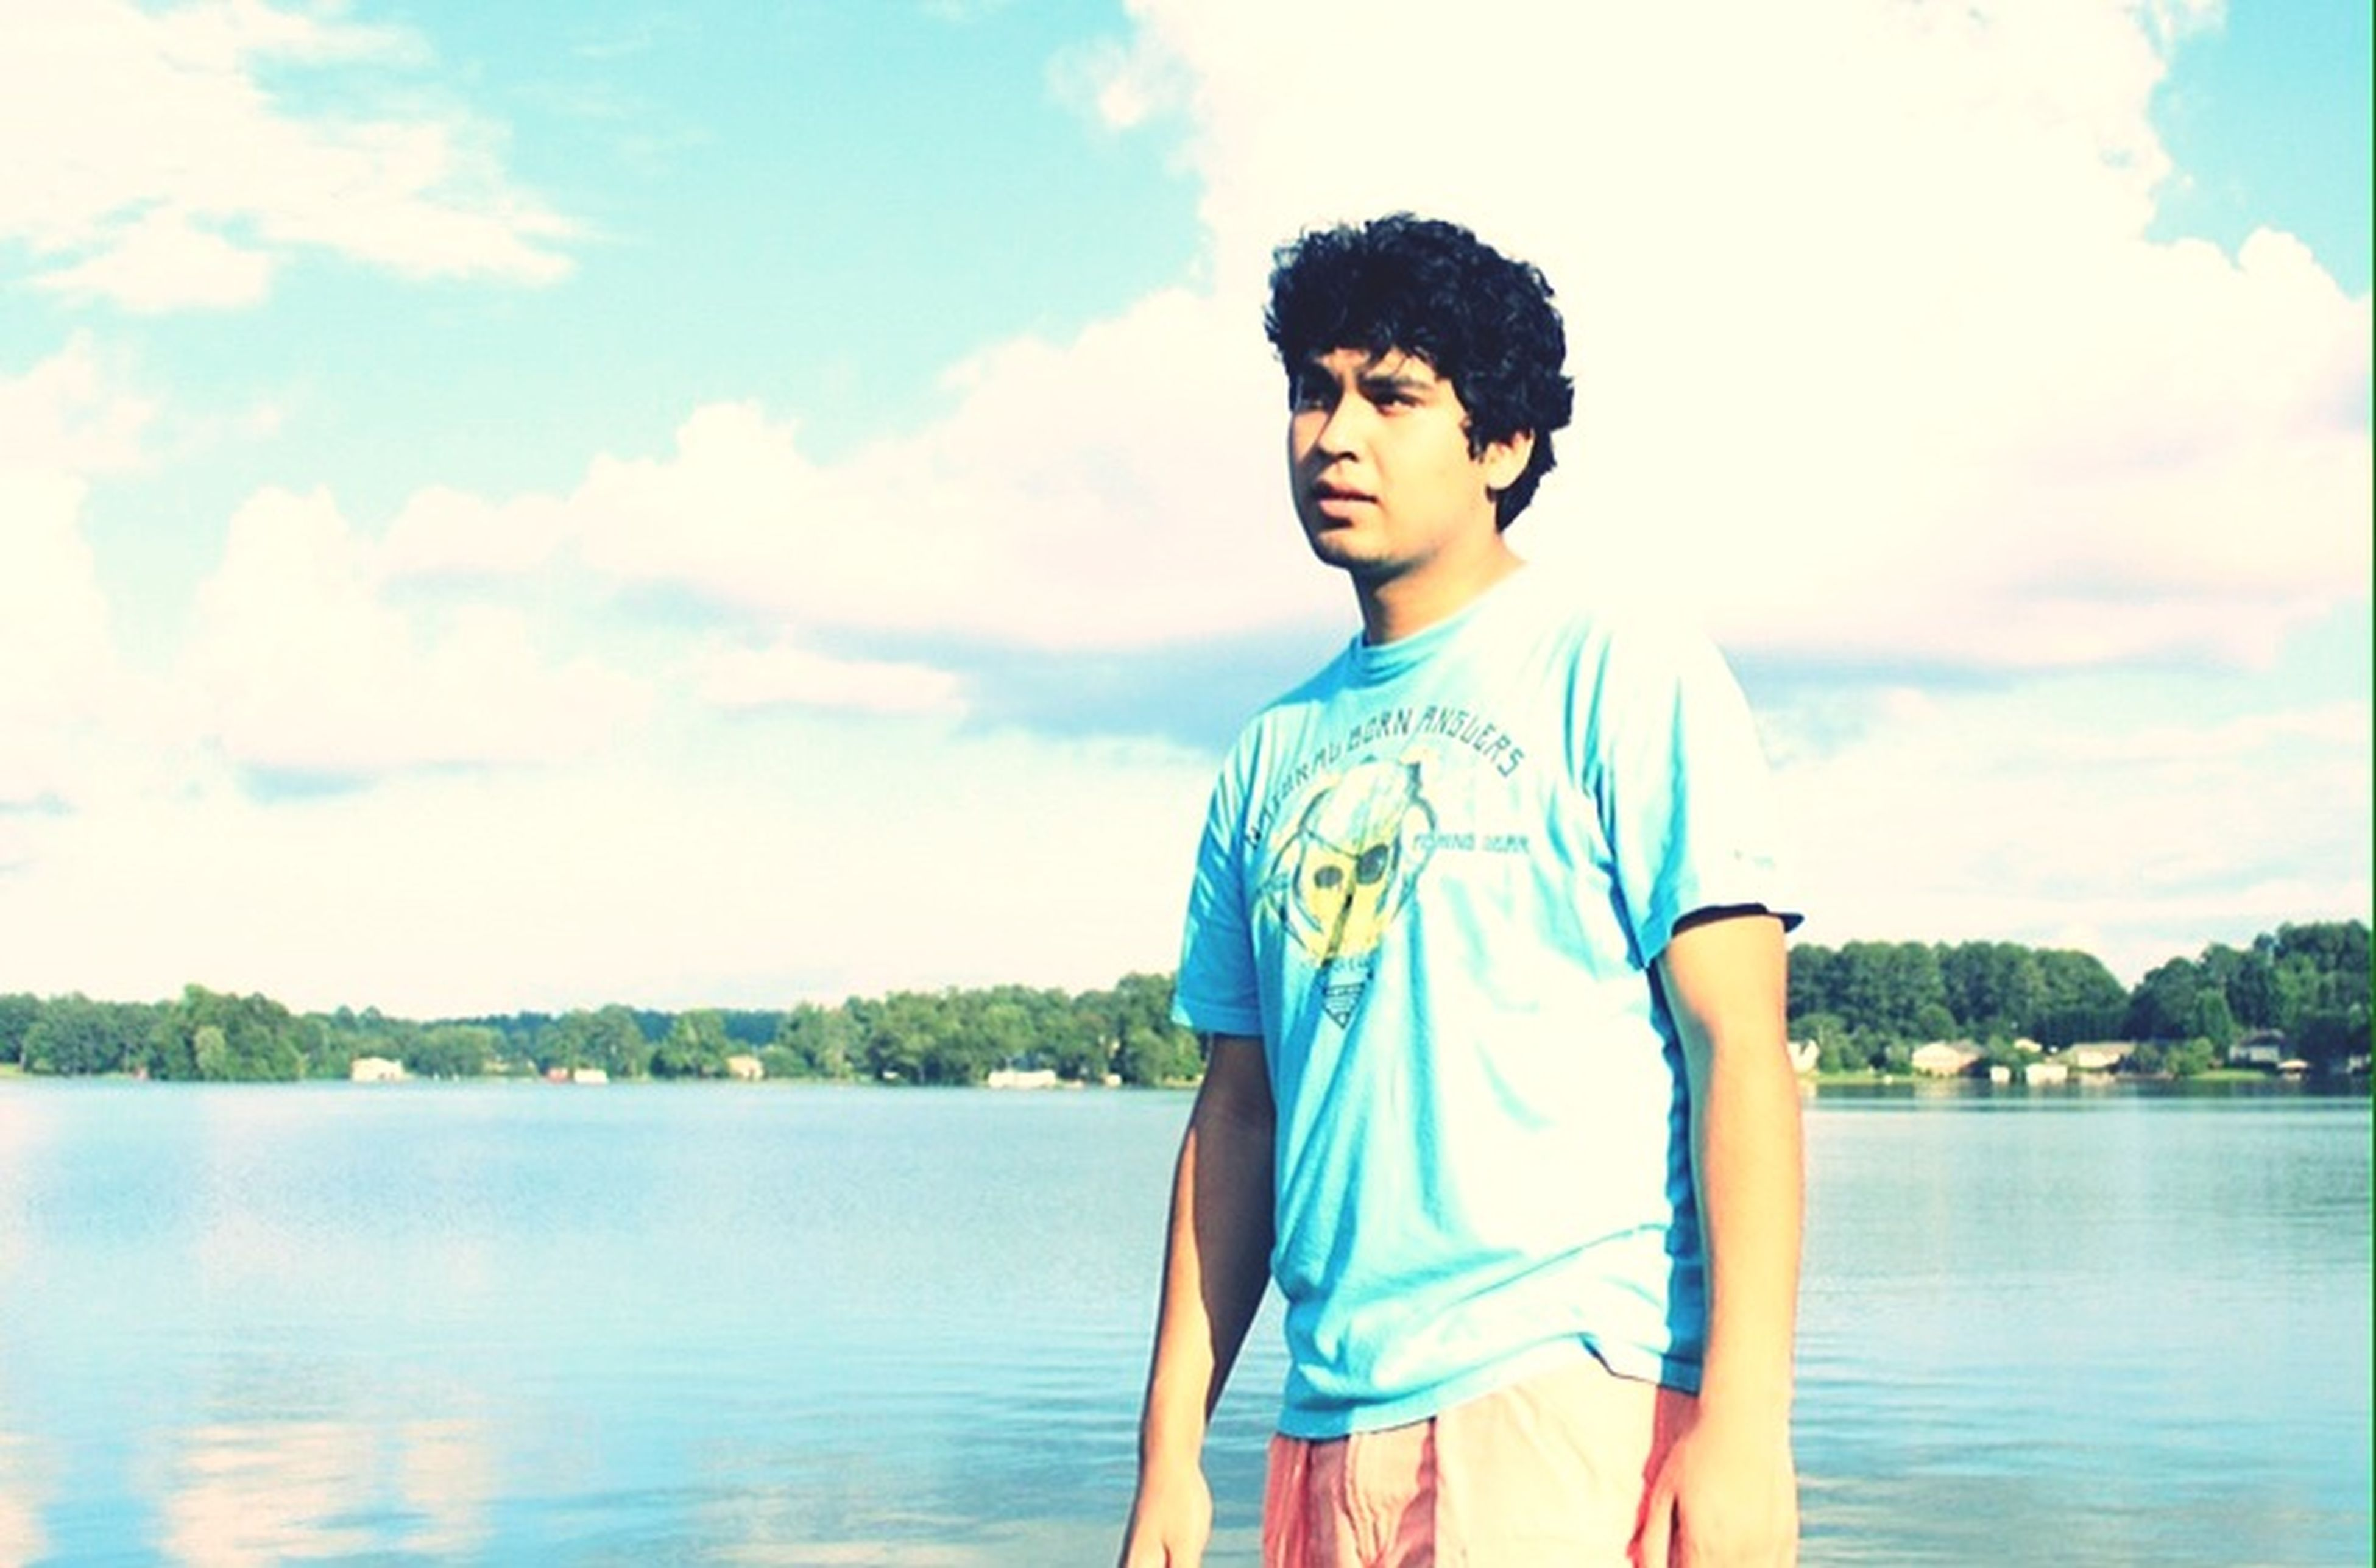 water, person, lifestyles, casual clothing, three quarter length, leisure activity, standing, sky, lake, waist up, young adult, front view, smiling, river, nature, childhood, young men, portrait